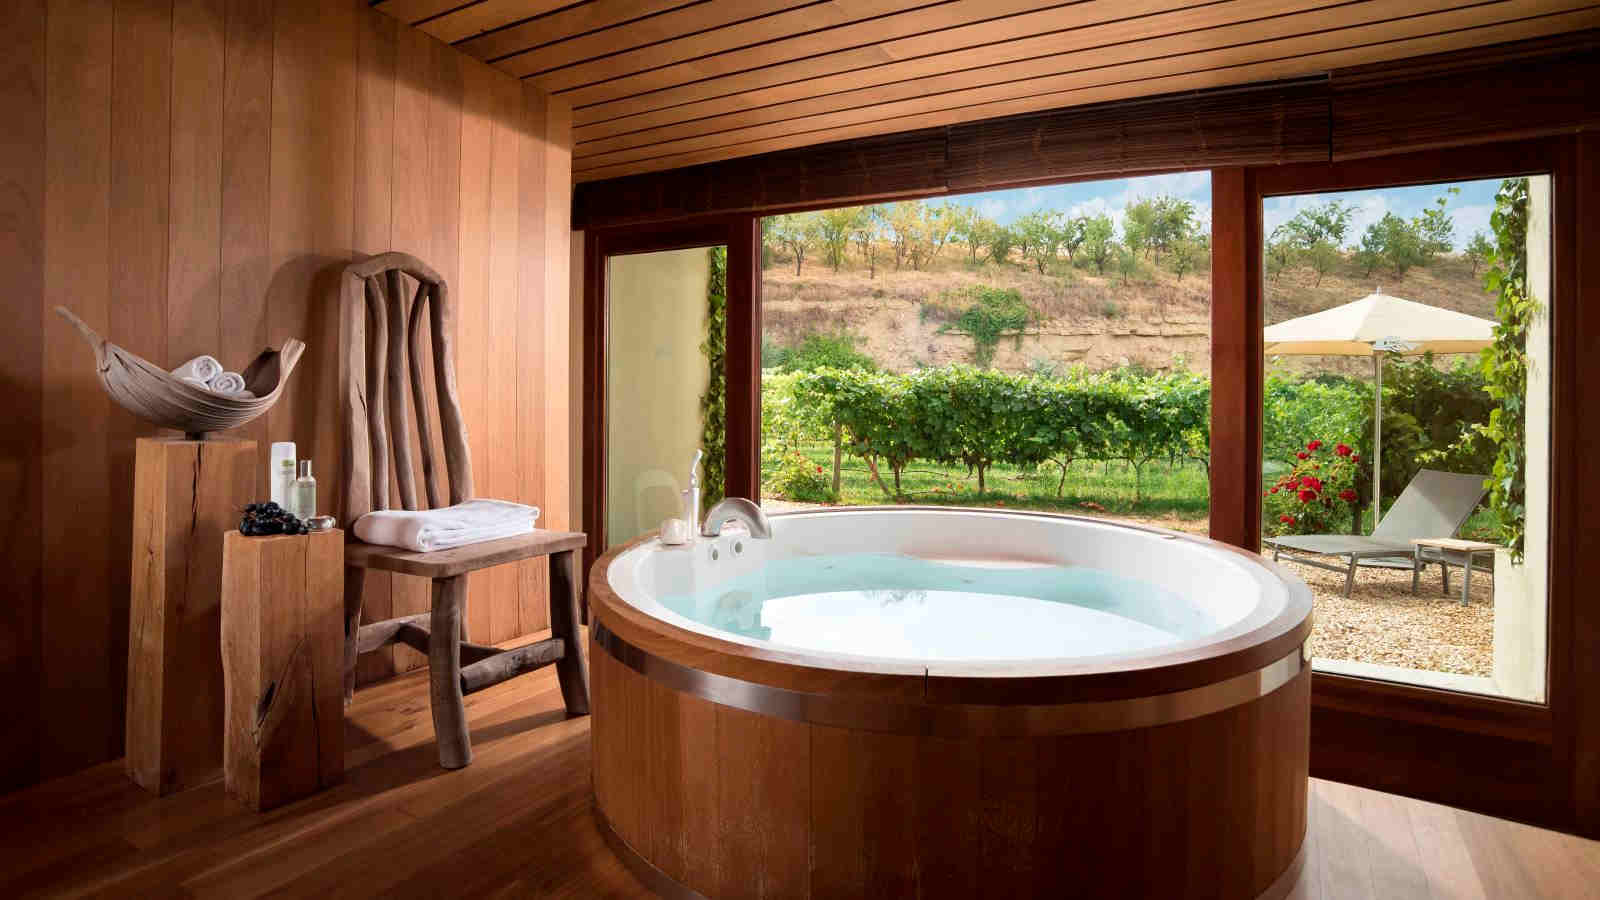 Barrel bath overlooking the Marqués de Riscal vineyards